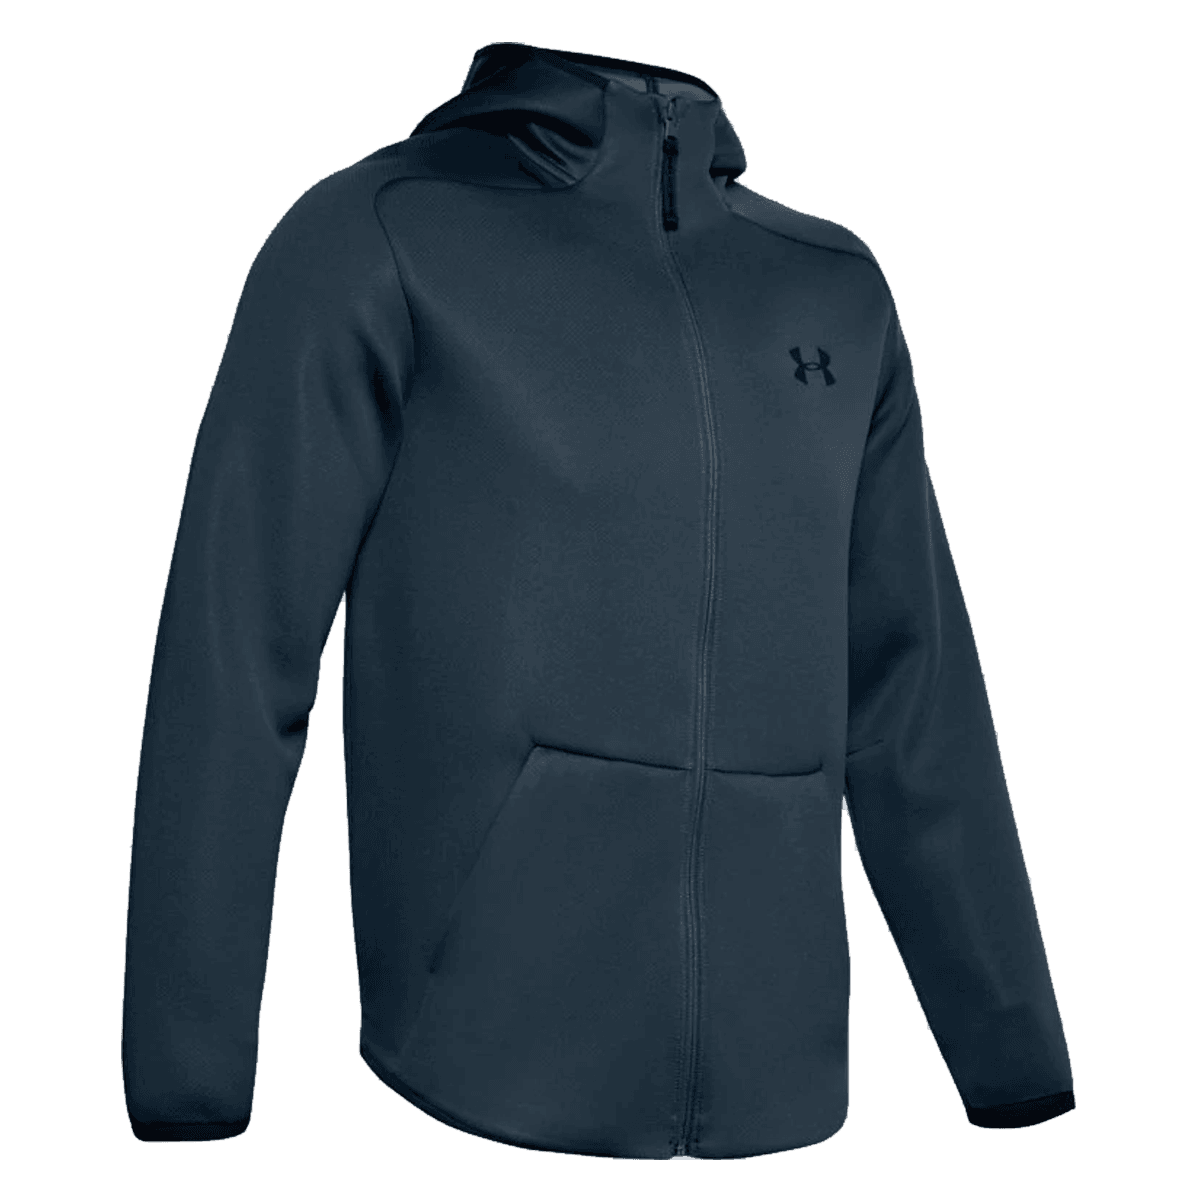 Under Armour Move FZ Jacket capuchonjack donkerblauw/zwart